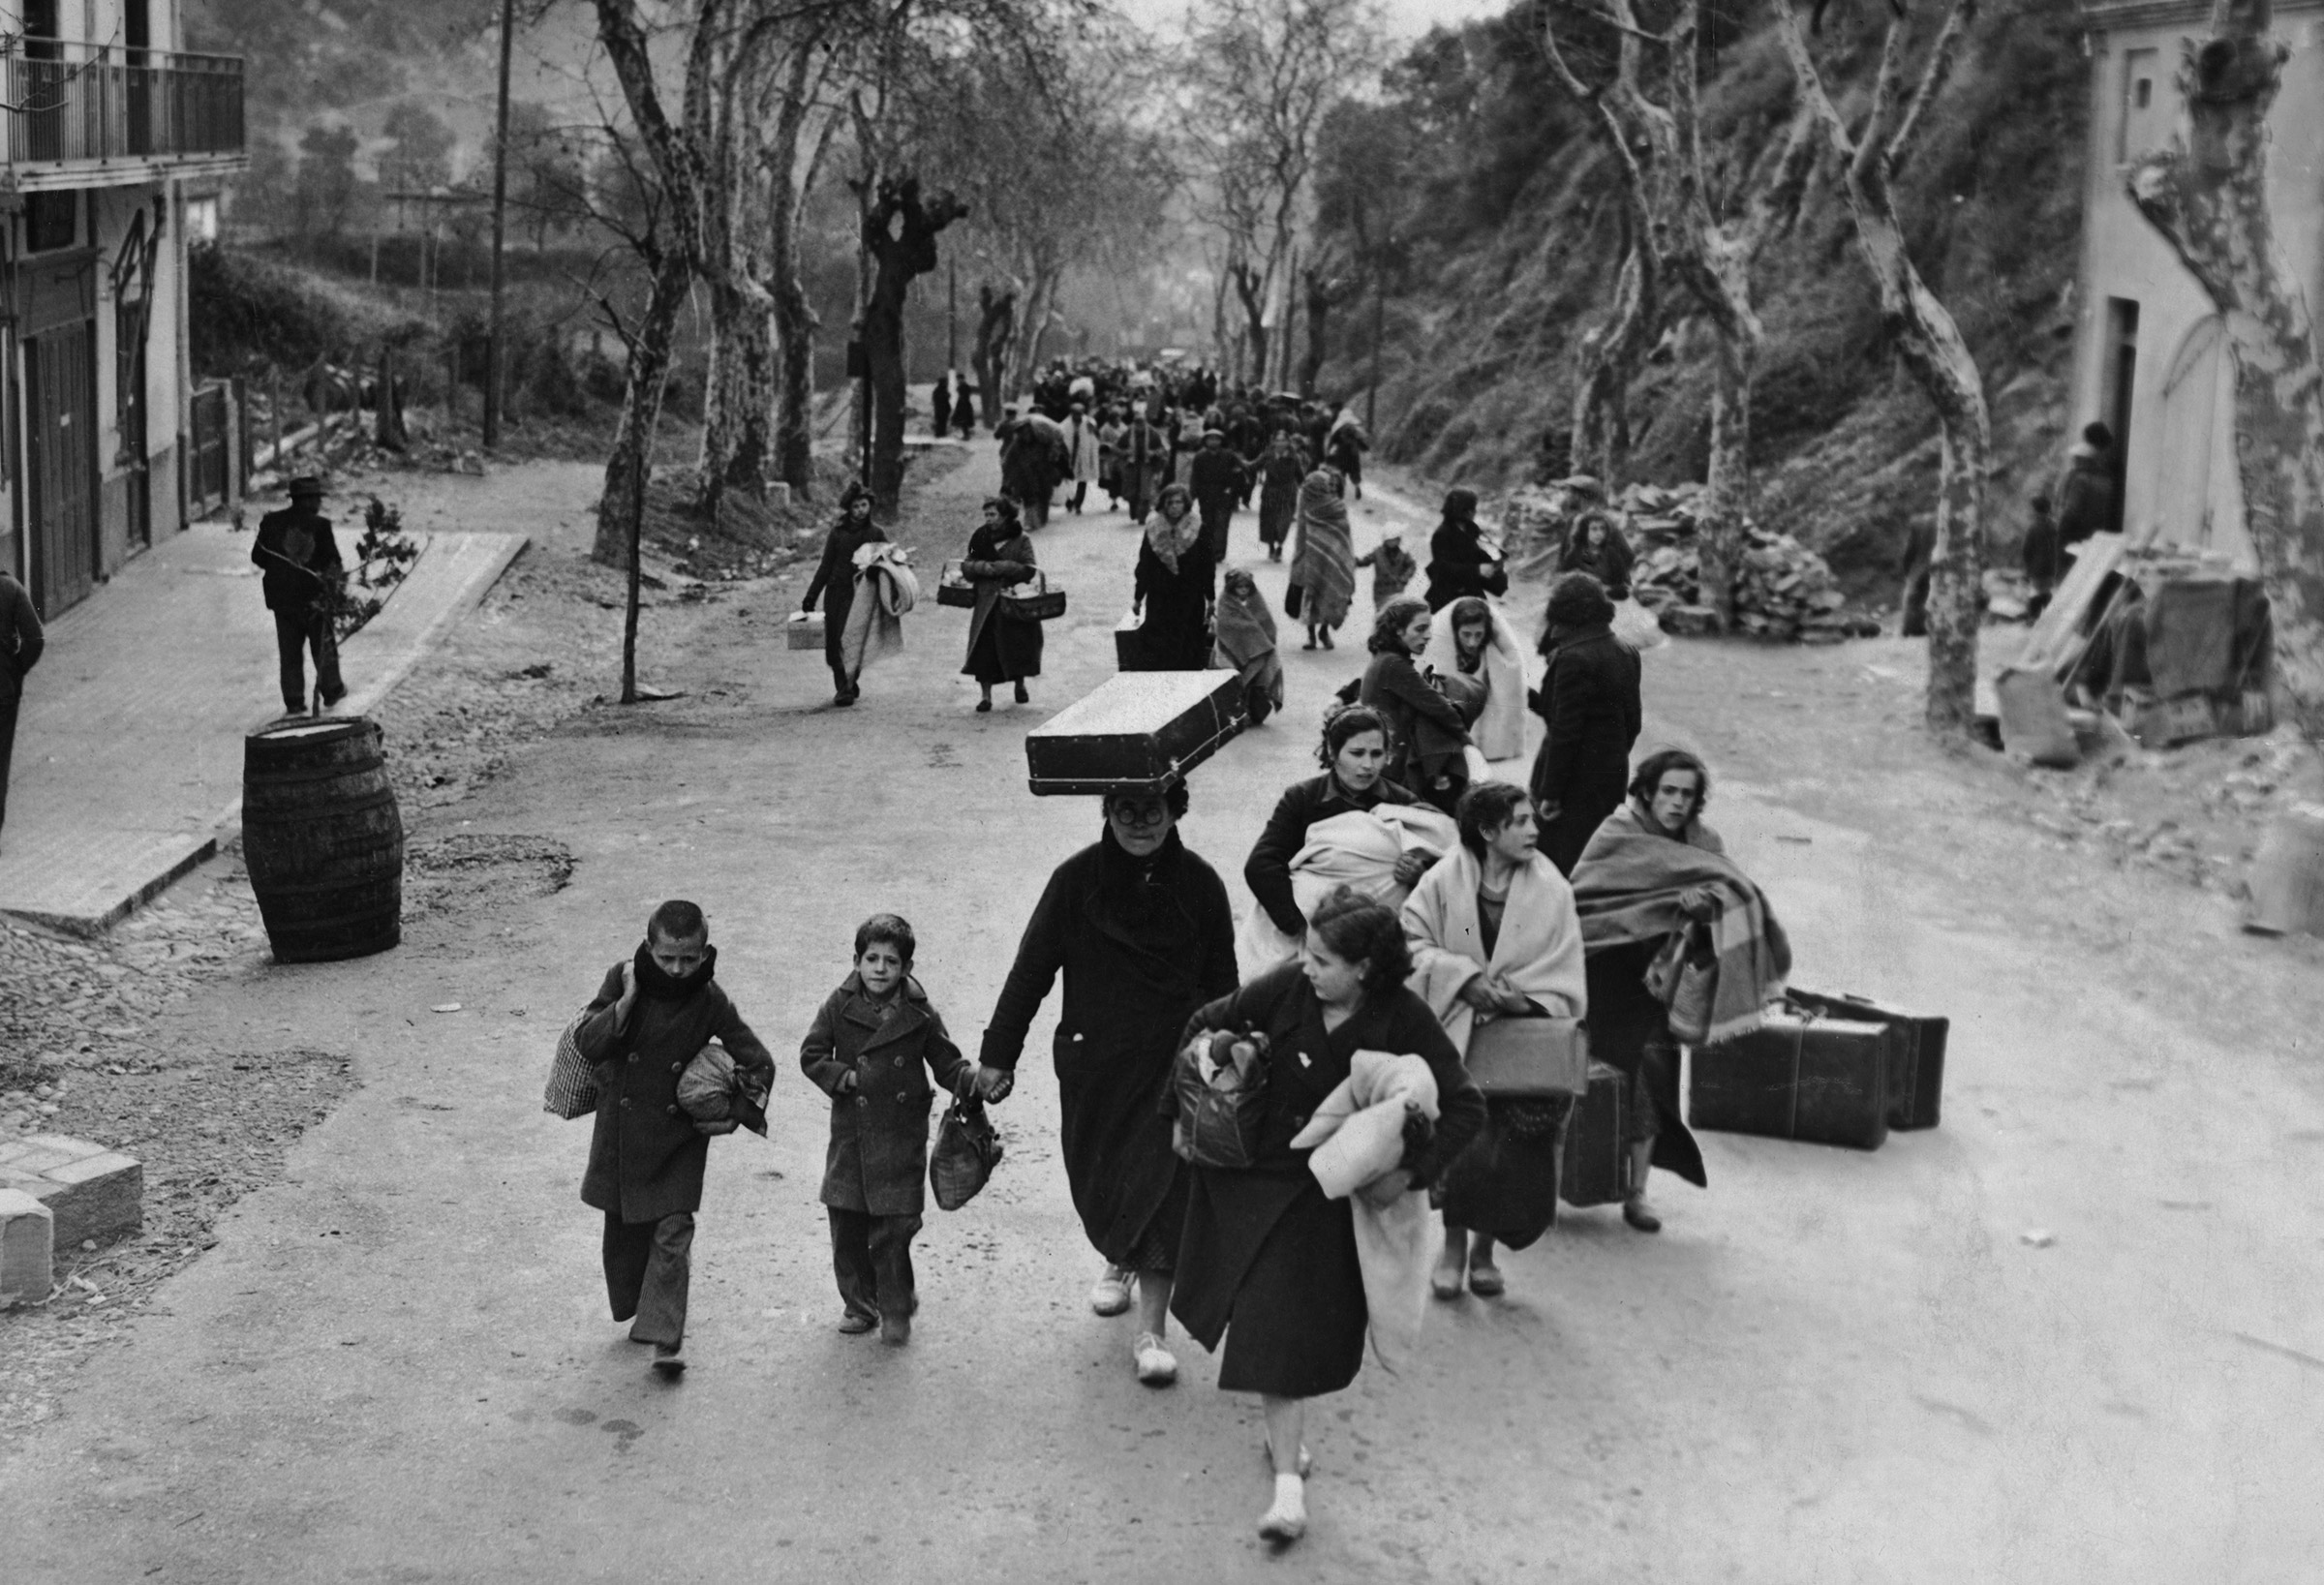 Refugees flee Paris in 1940.